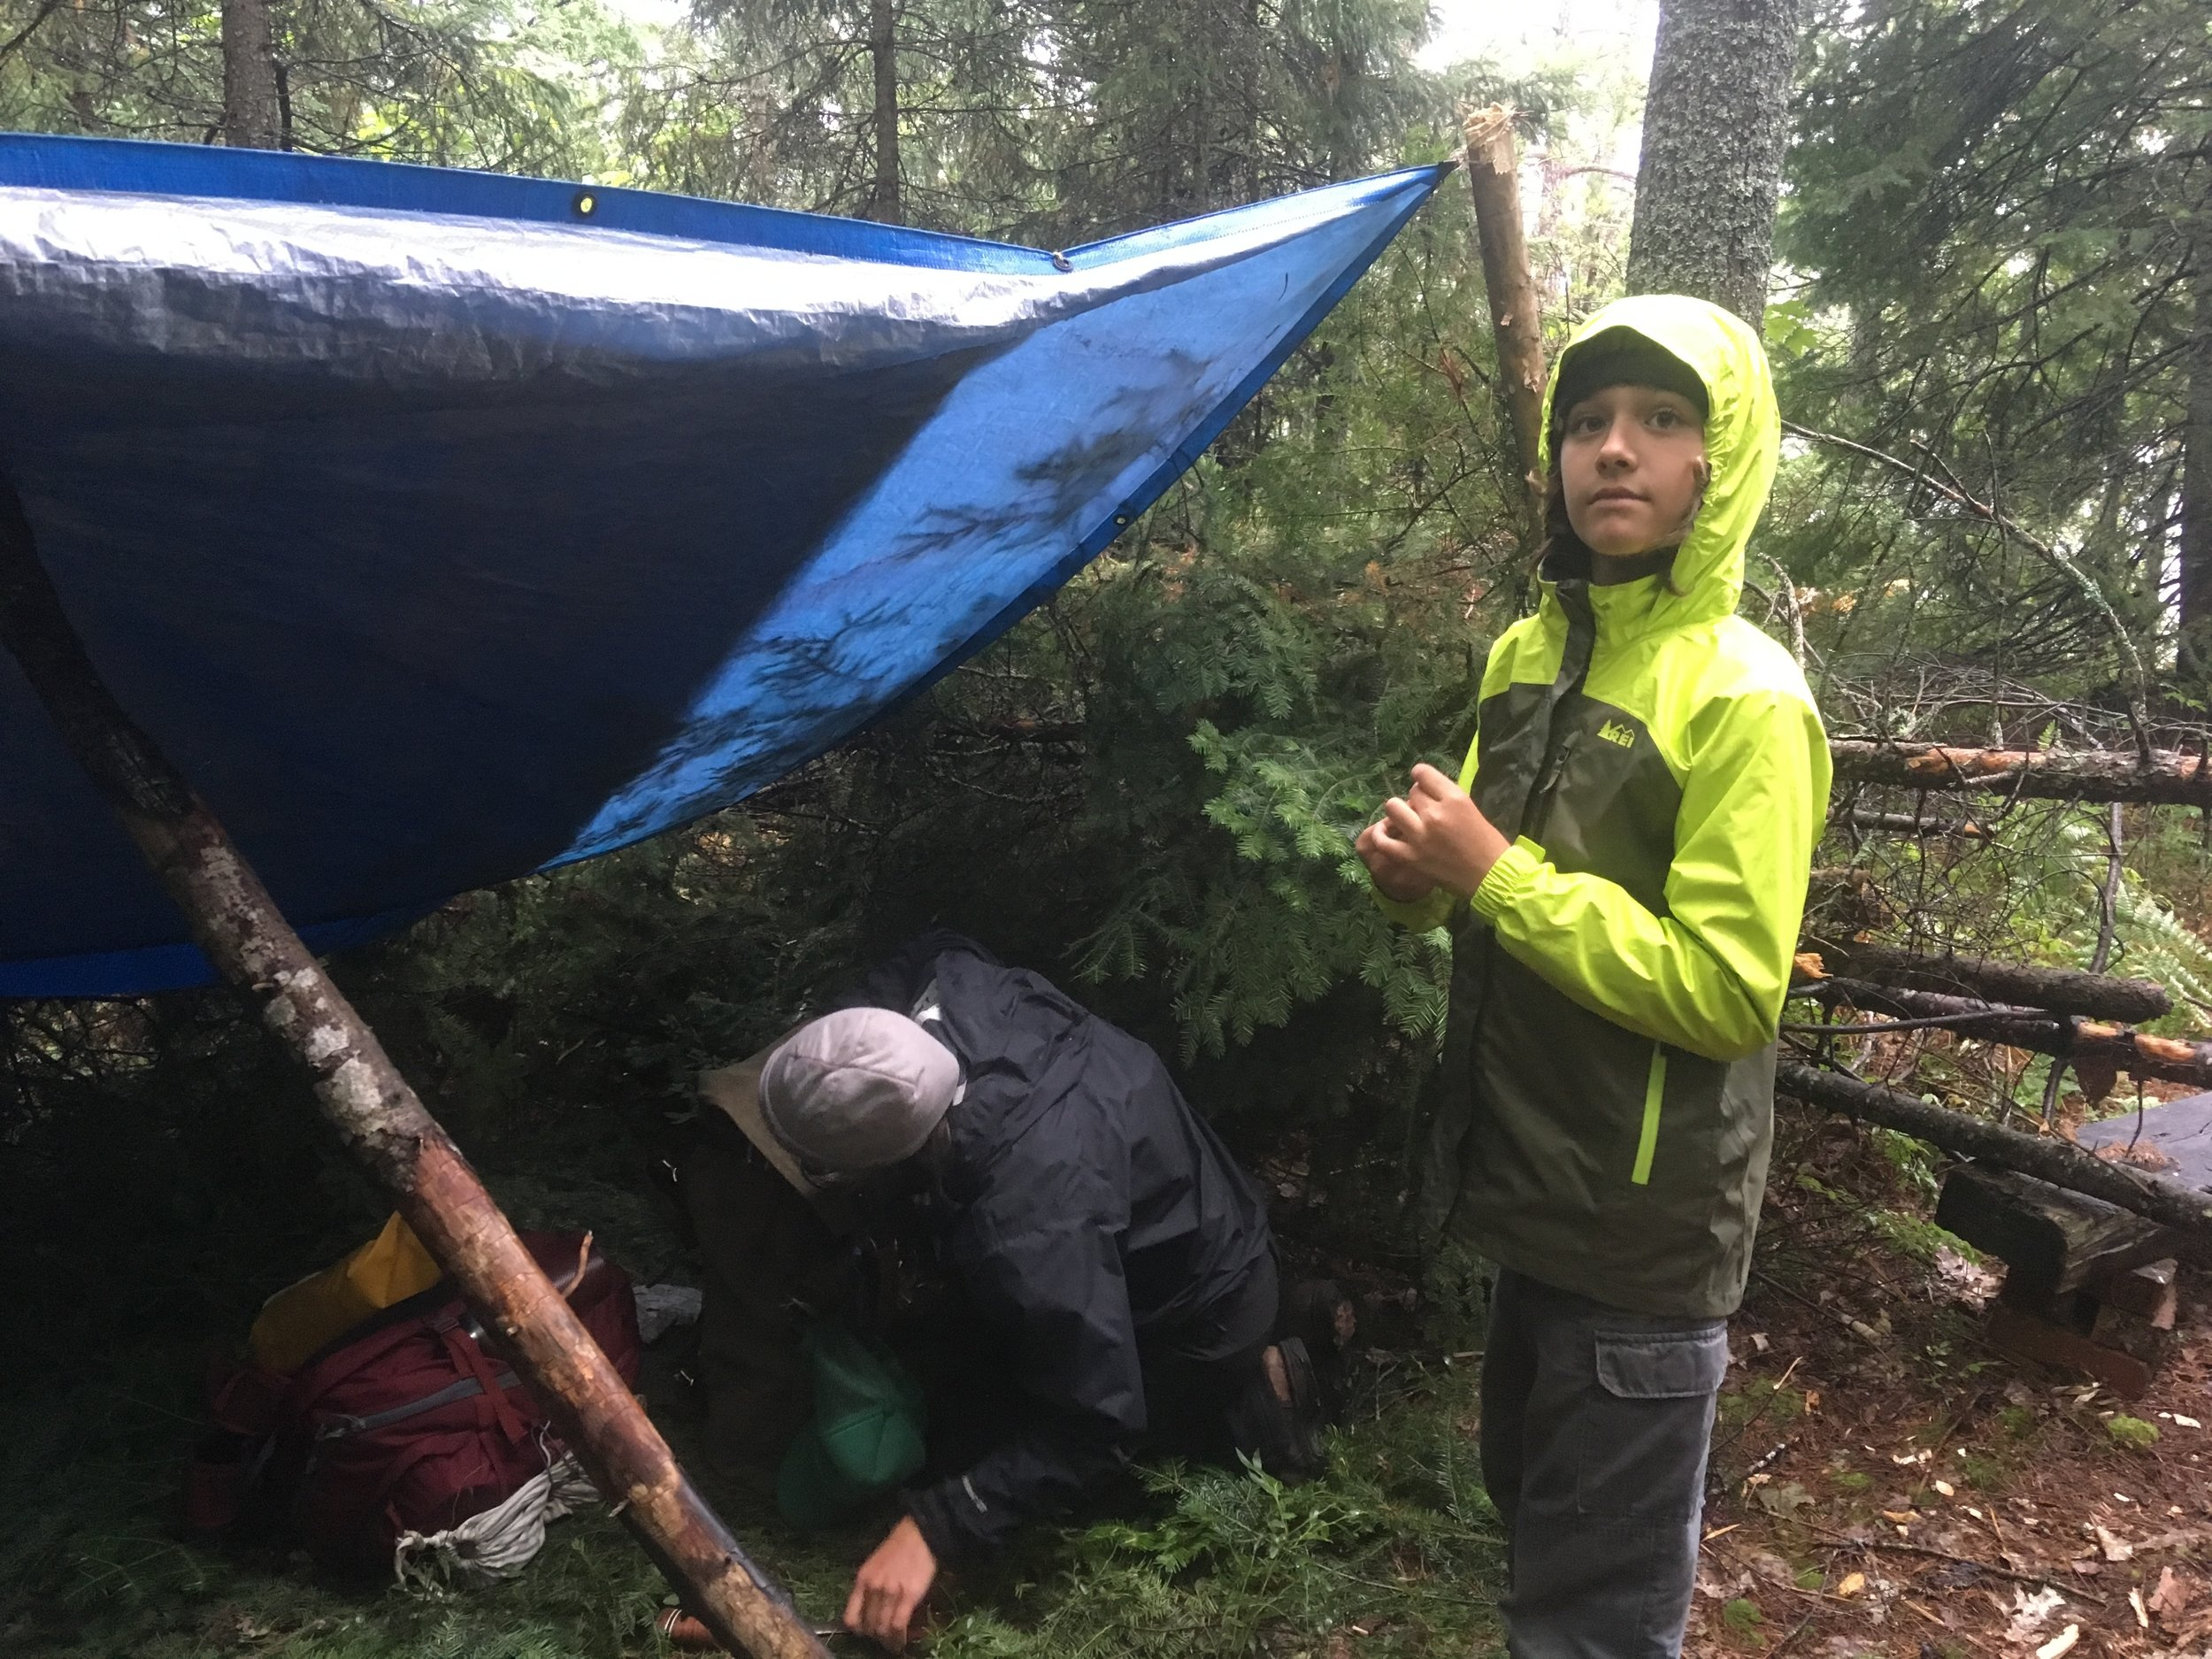 Taking down our camp in the rain